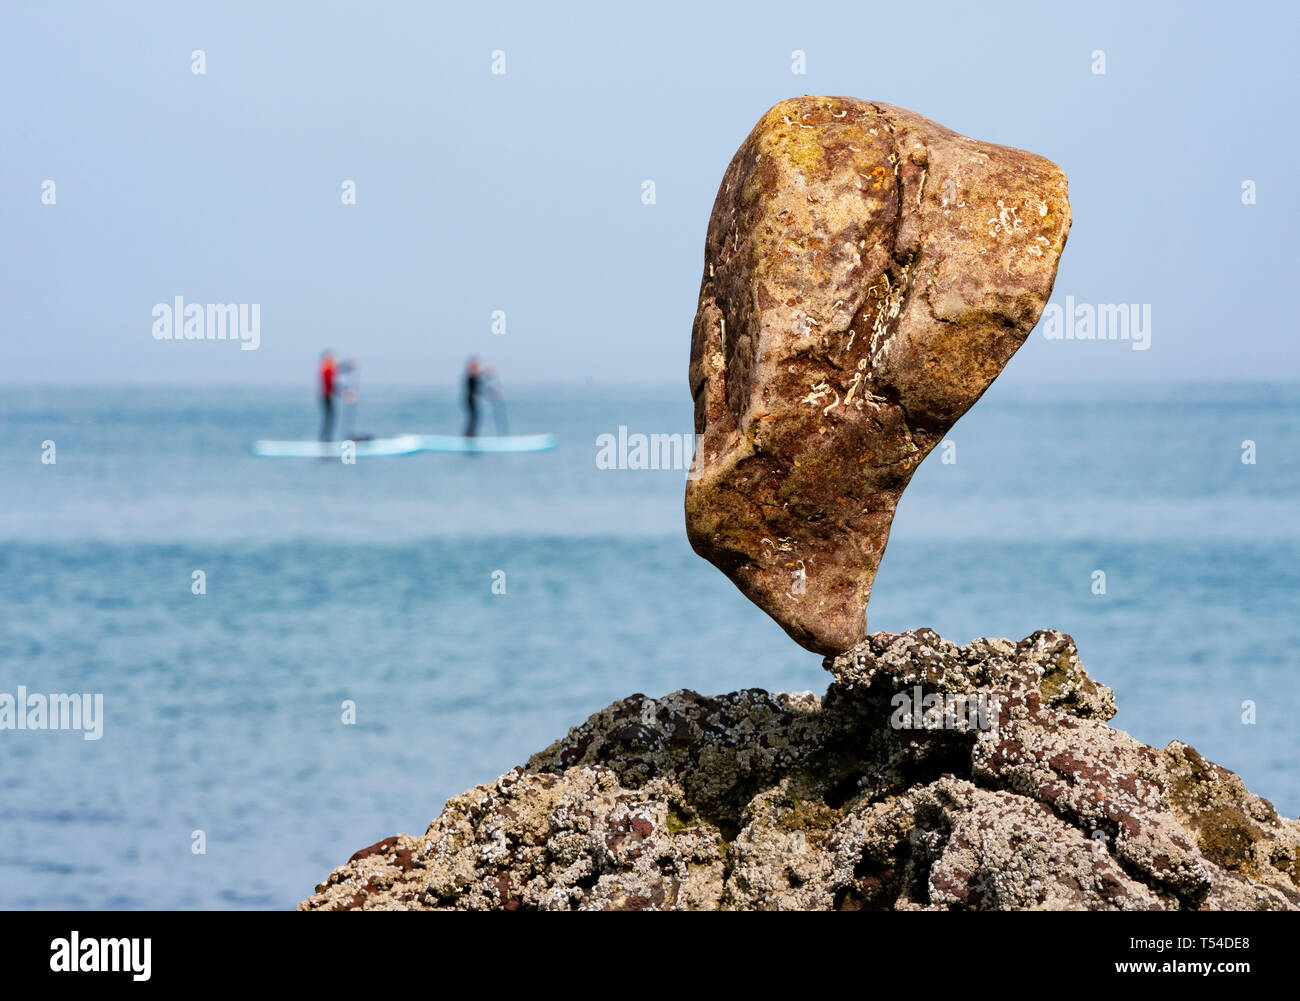 Dunbar, Scotland, UK. 20th Apr, 2019. Solitary stone balanced on rock at Eye Cave beach in Dunbar during opening day of the European Stone Stacking Championship 2019. Credit: Iain Masterton/Alamy Live News - Stock Image